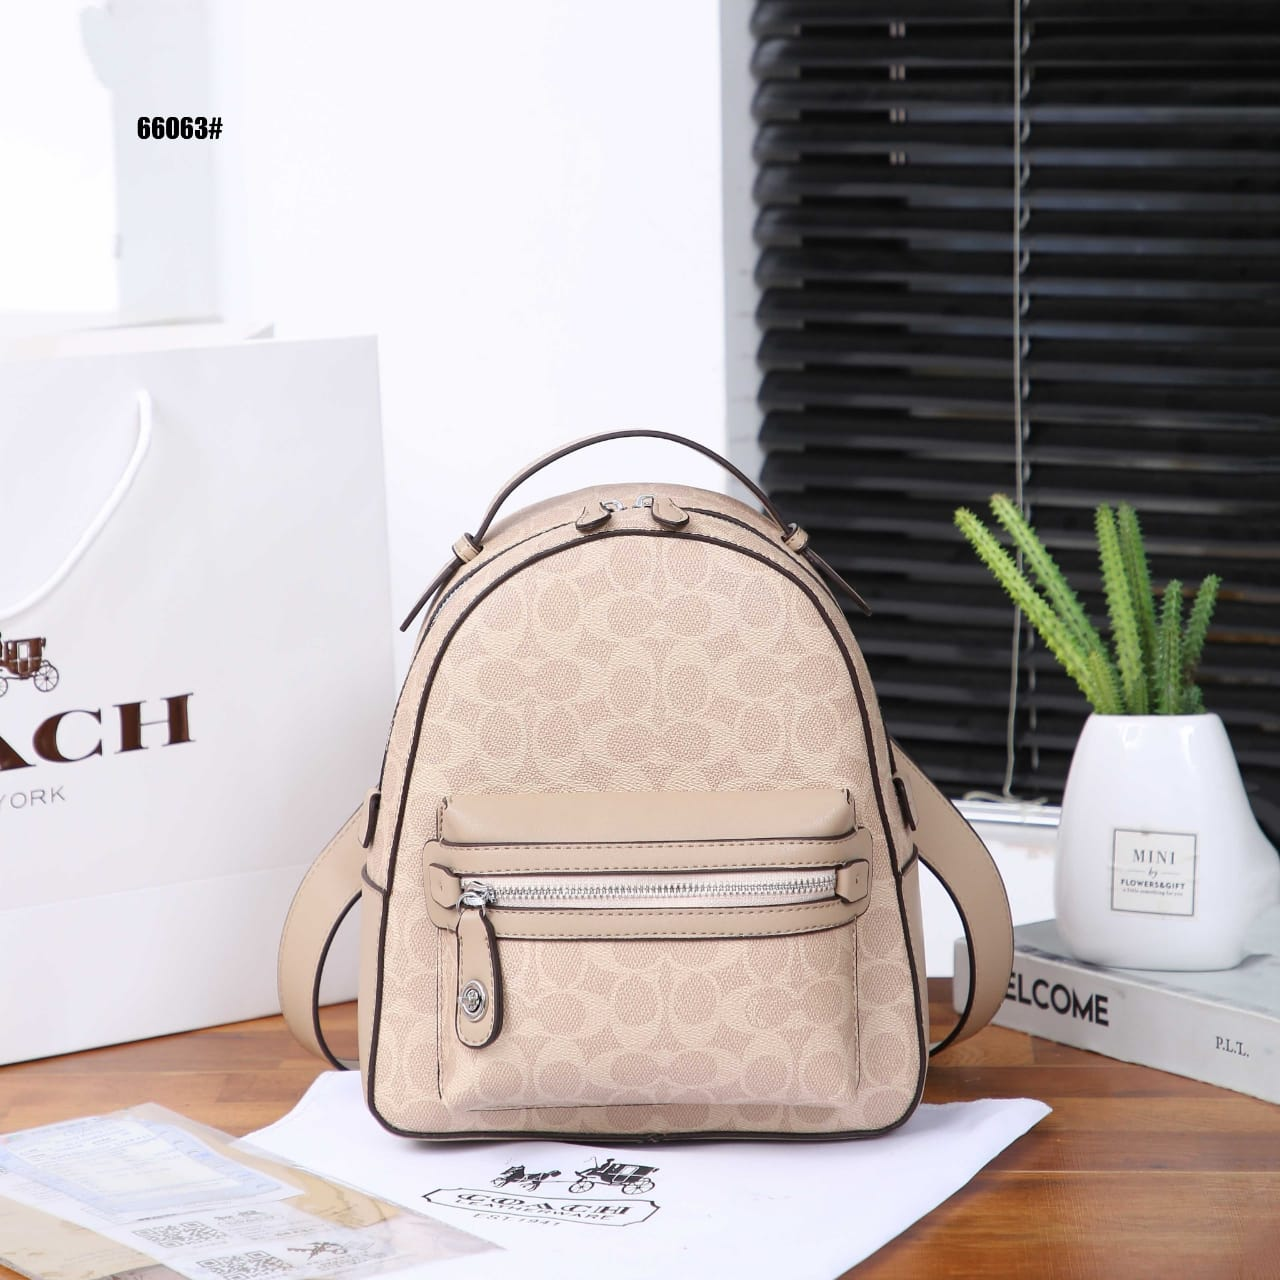 CCH Campus Backpack in Signature Silver Hardware 66063#